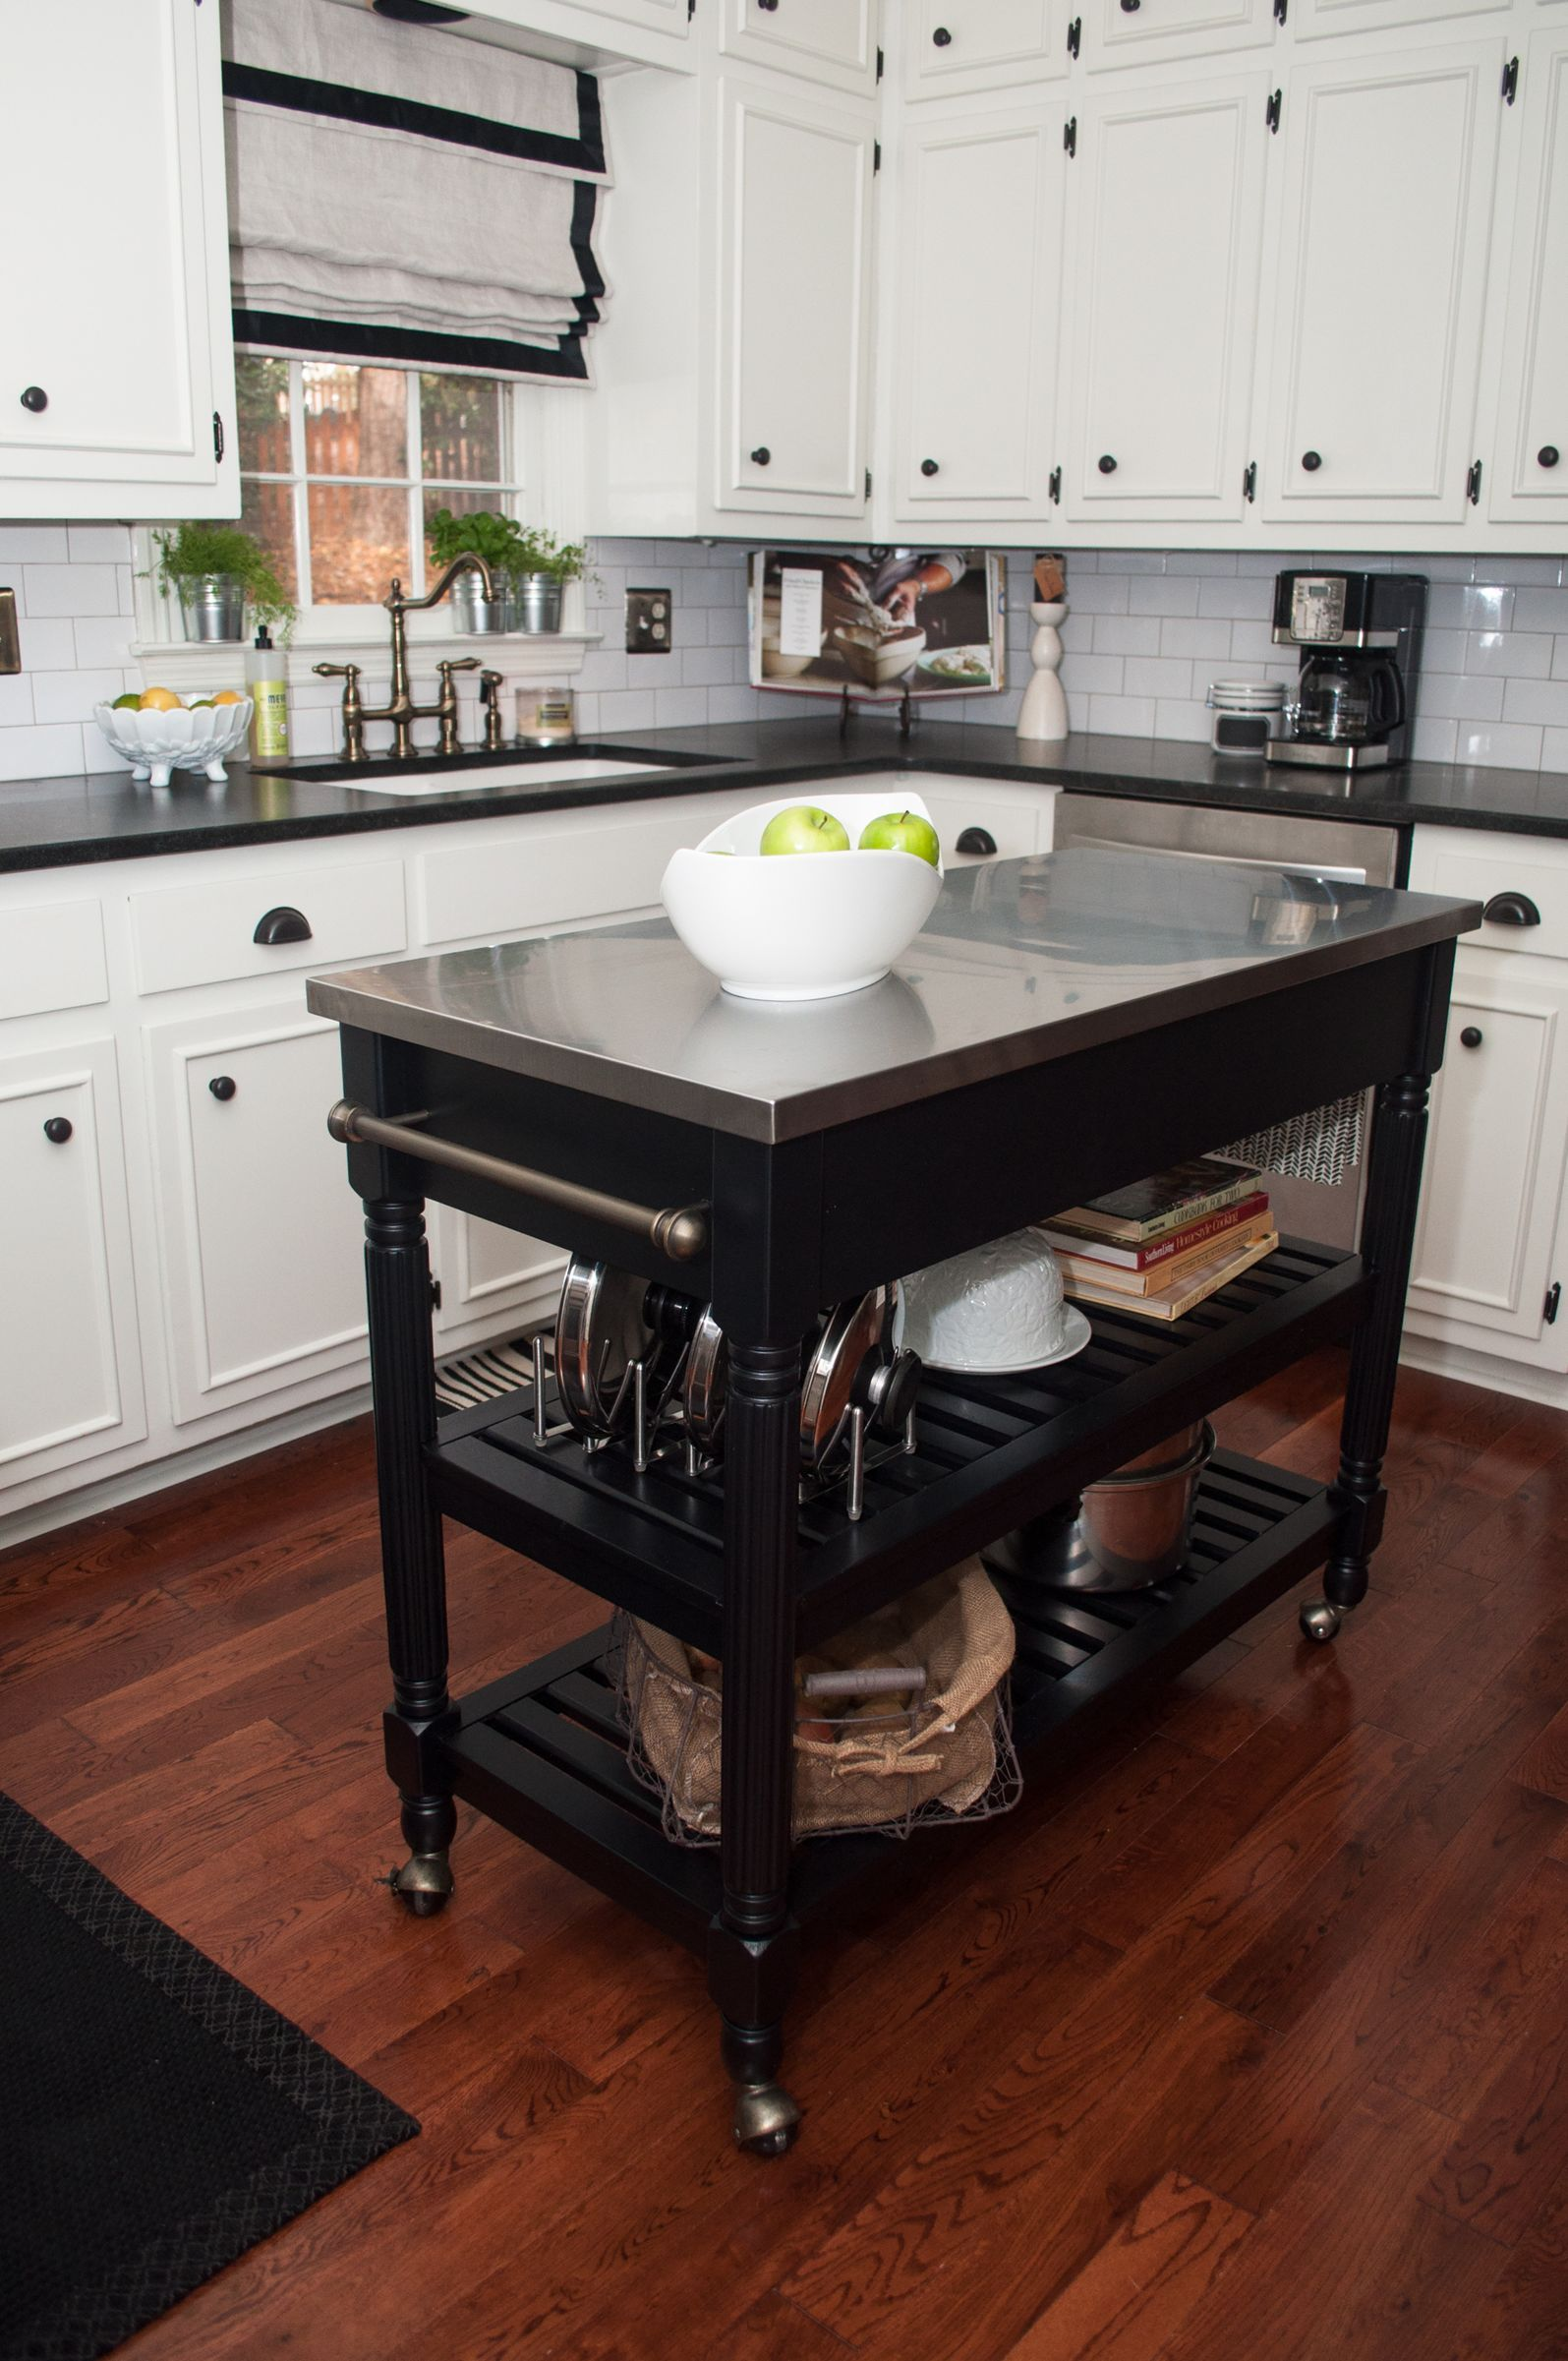 10 Types of Small Kitchen Islands  Carts on Wheels